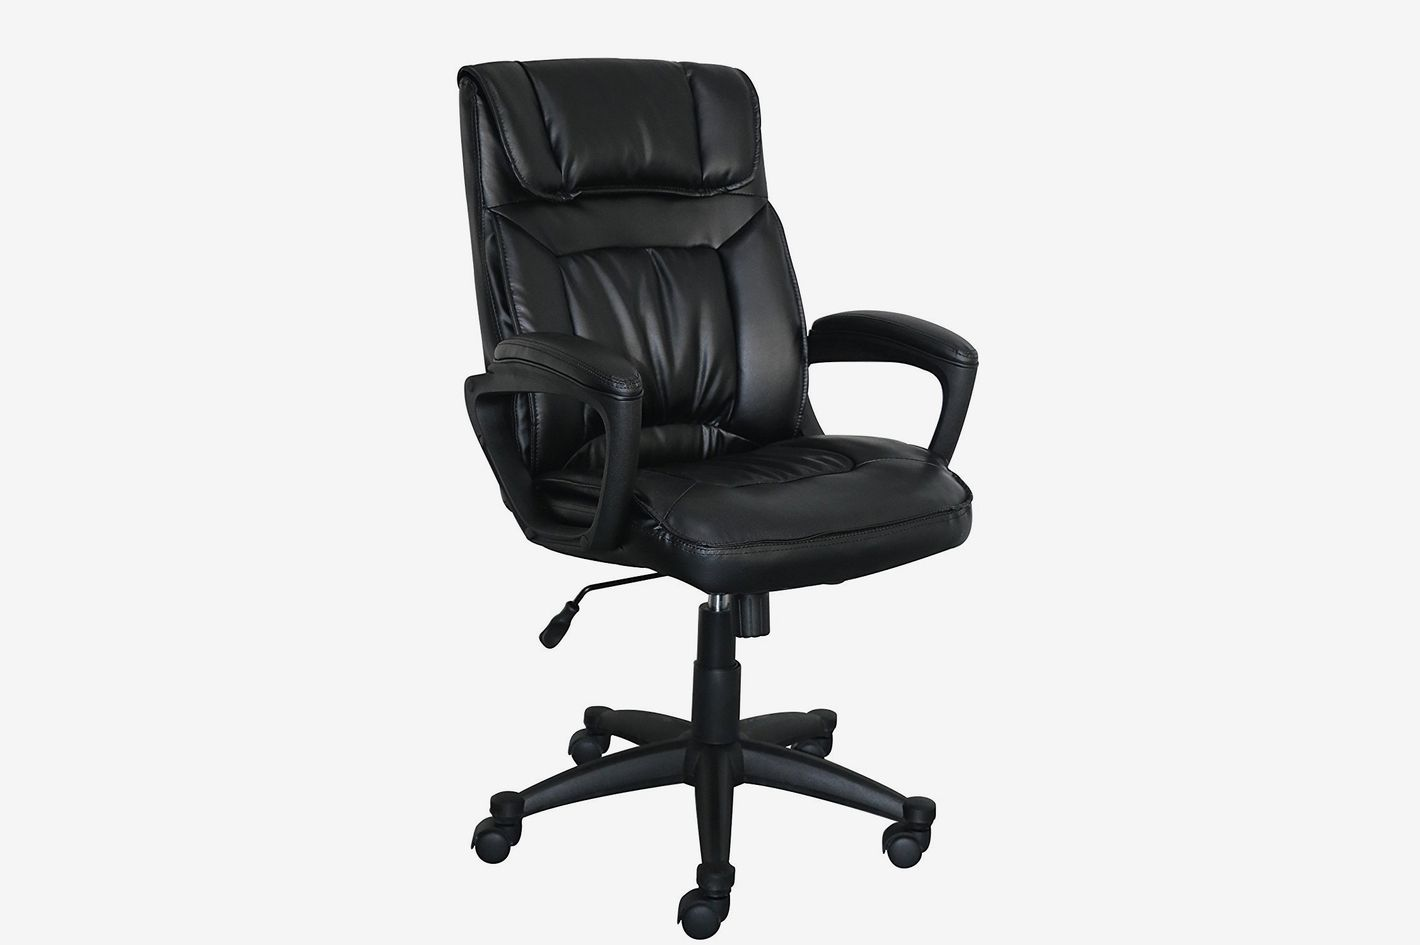 serta black leather best office chair under $200 & 16 Best Office Chairs and Home-Office Chairs u2014 2018